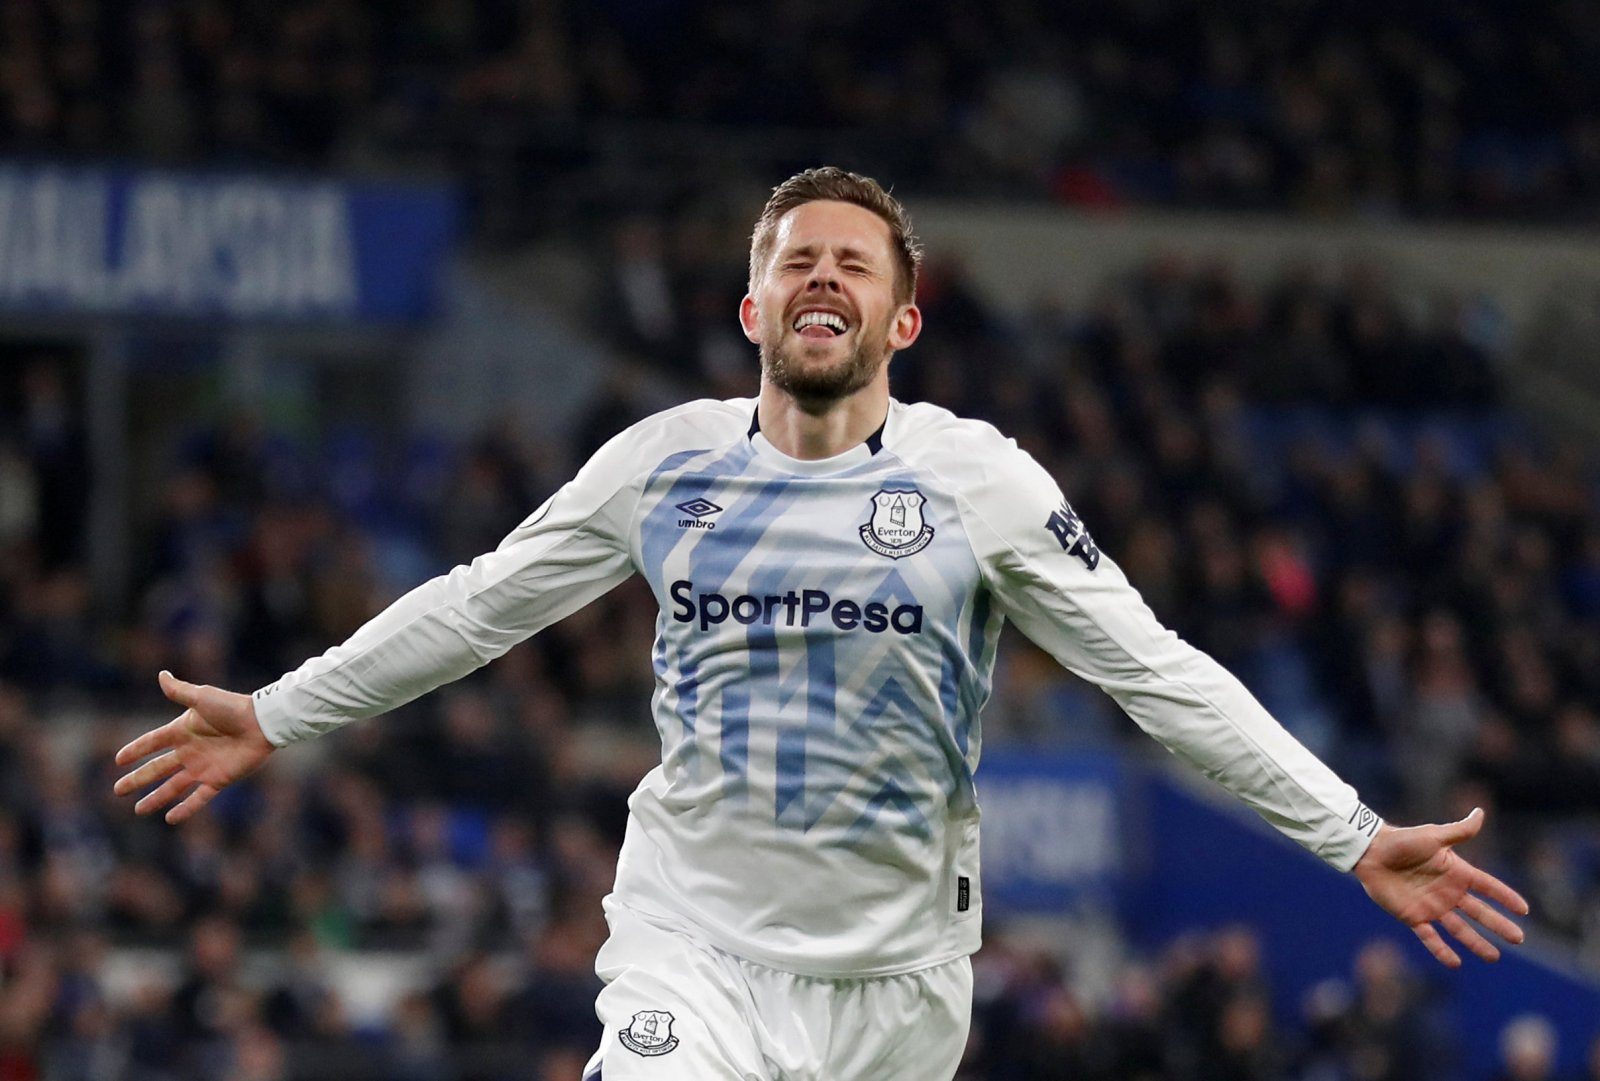 Gylfi Sigurdsson emerges as man to turn things around for Marco Silva's Everton